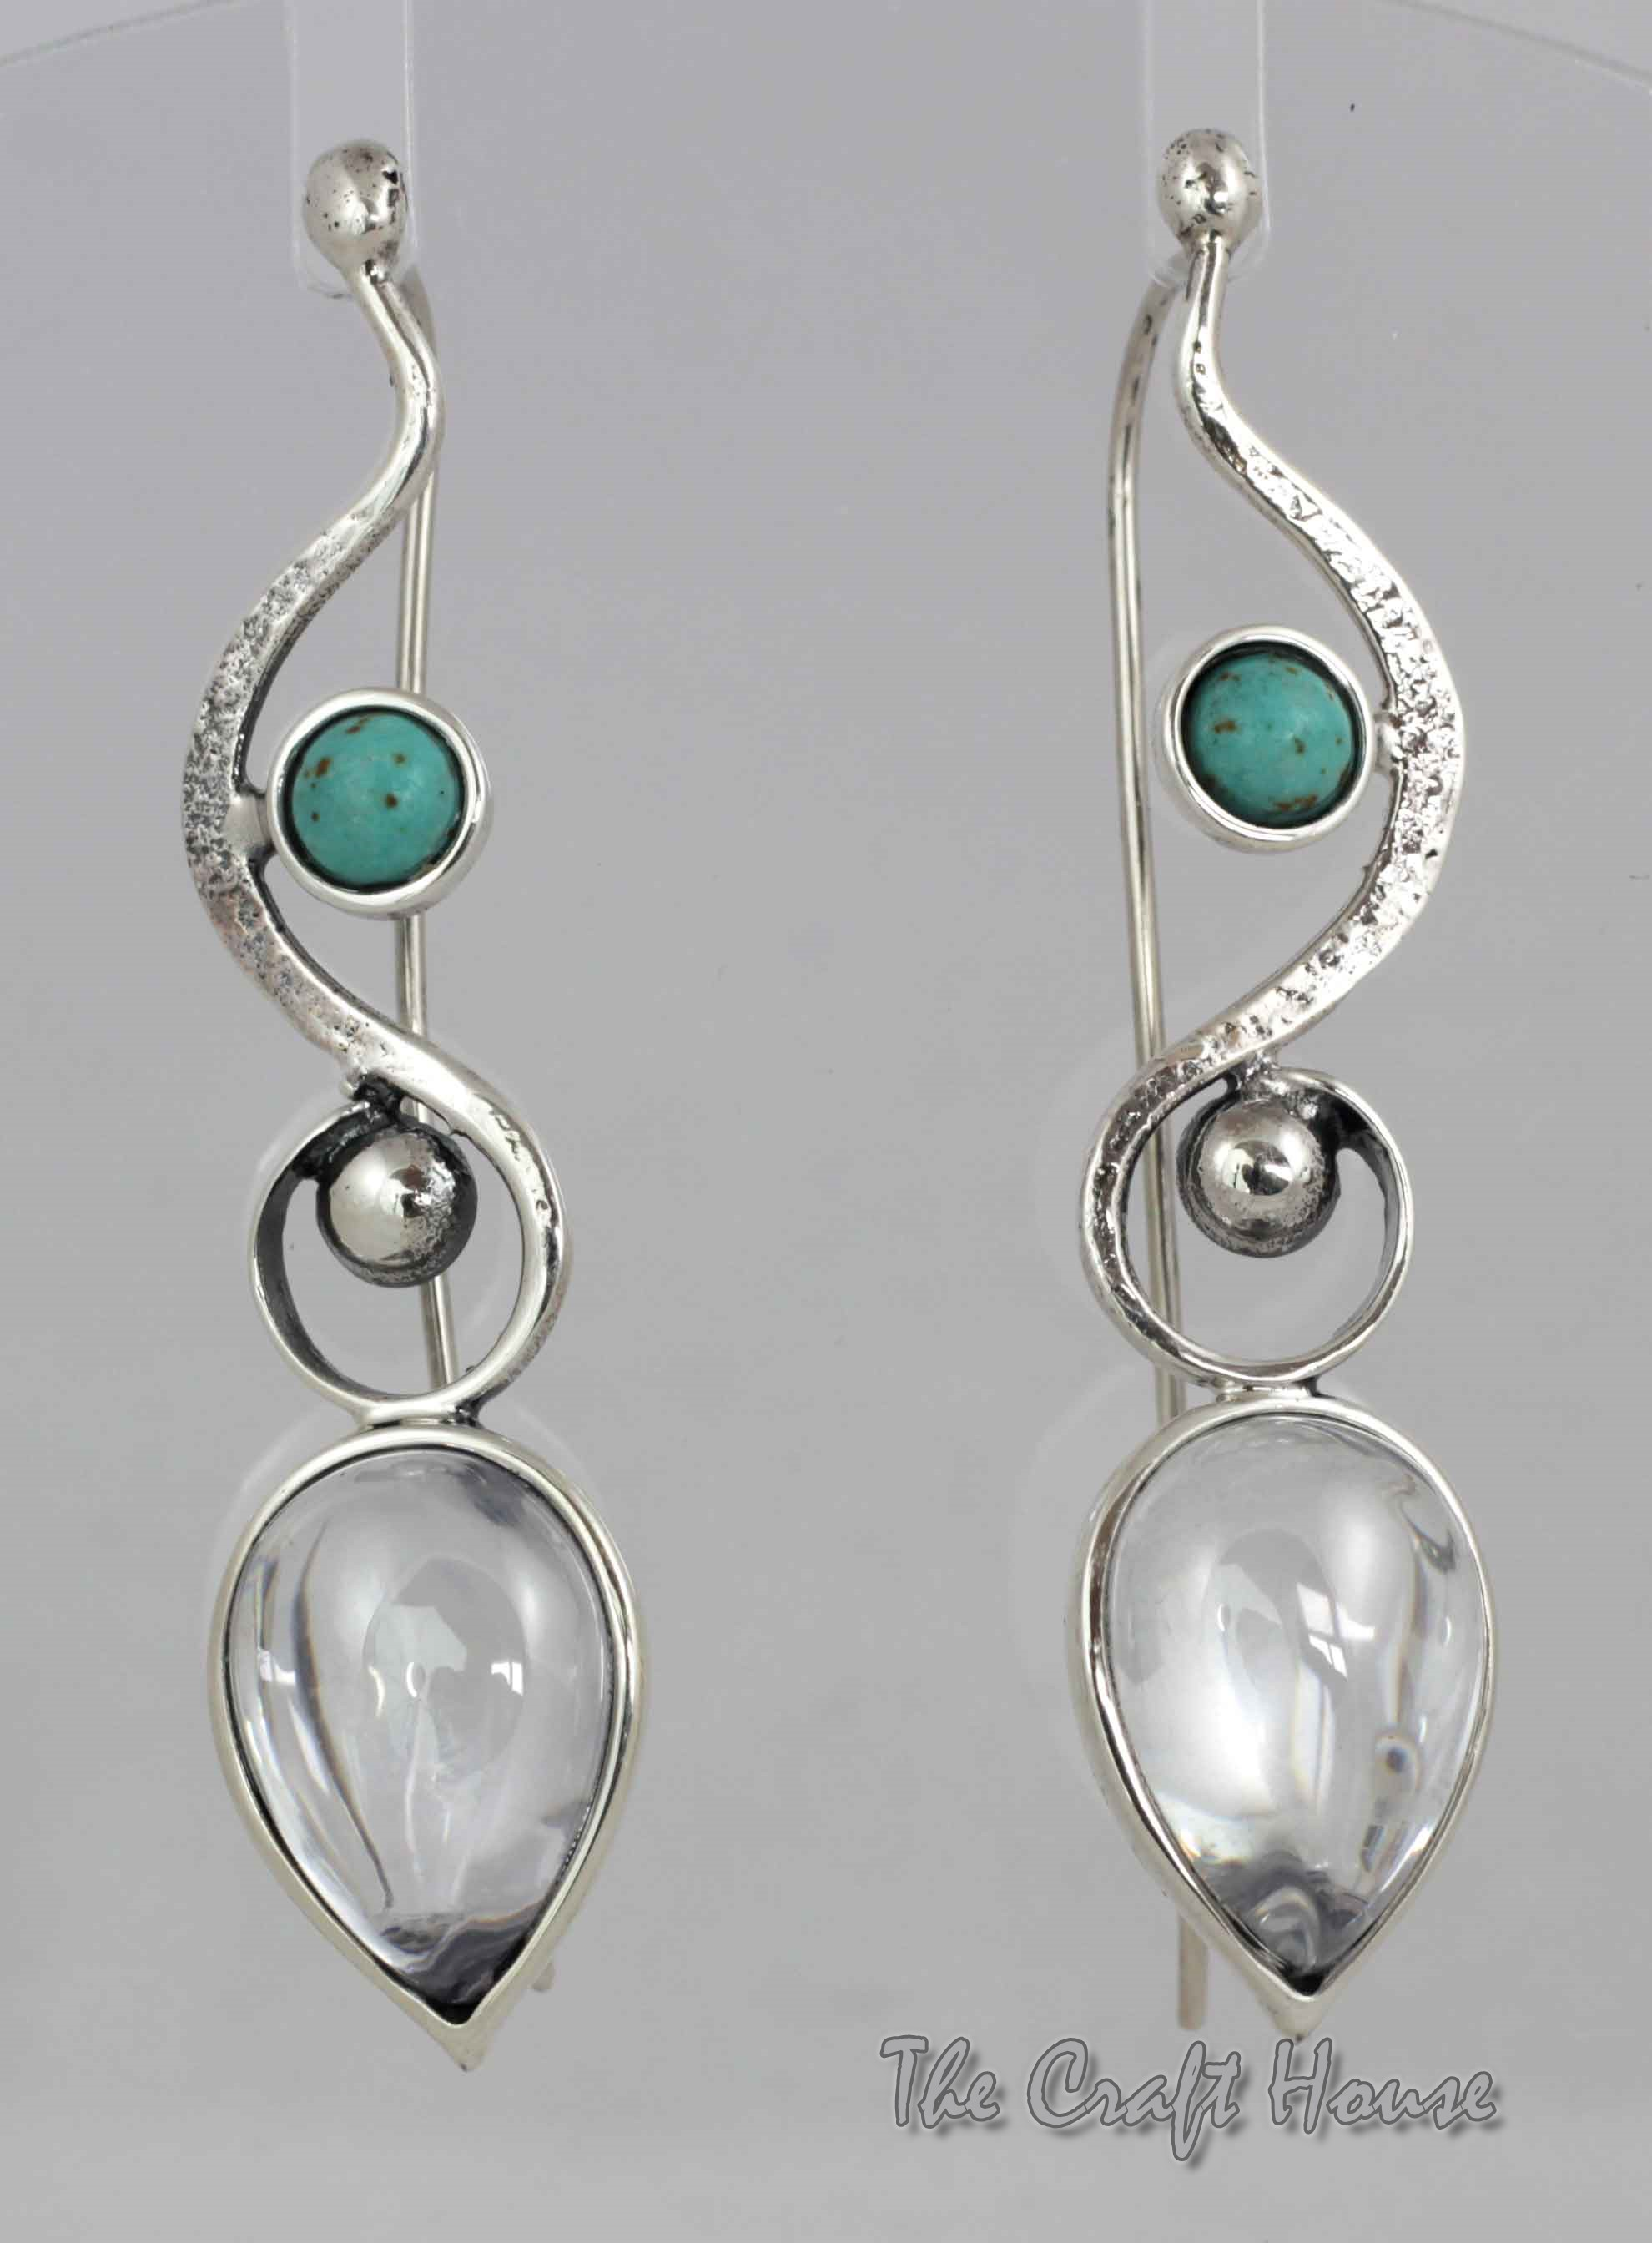 Silver earrings with Rock crystal and Turquoise